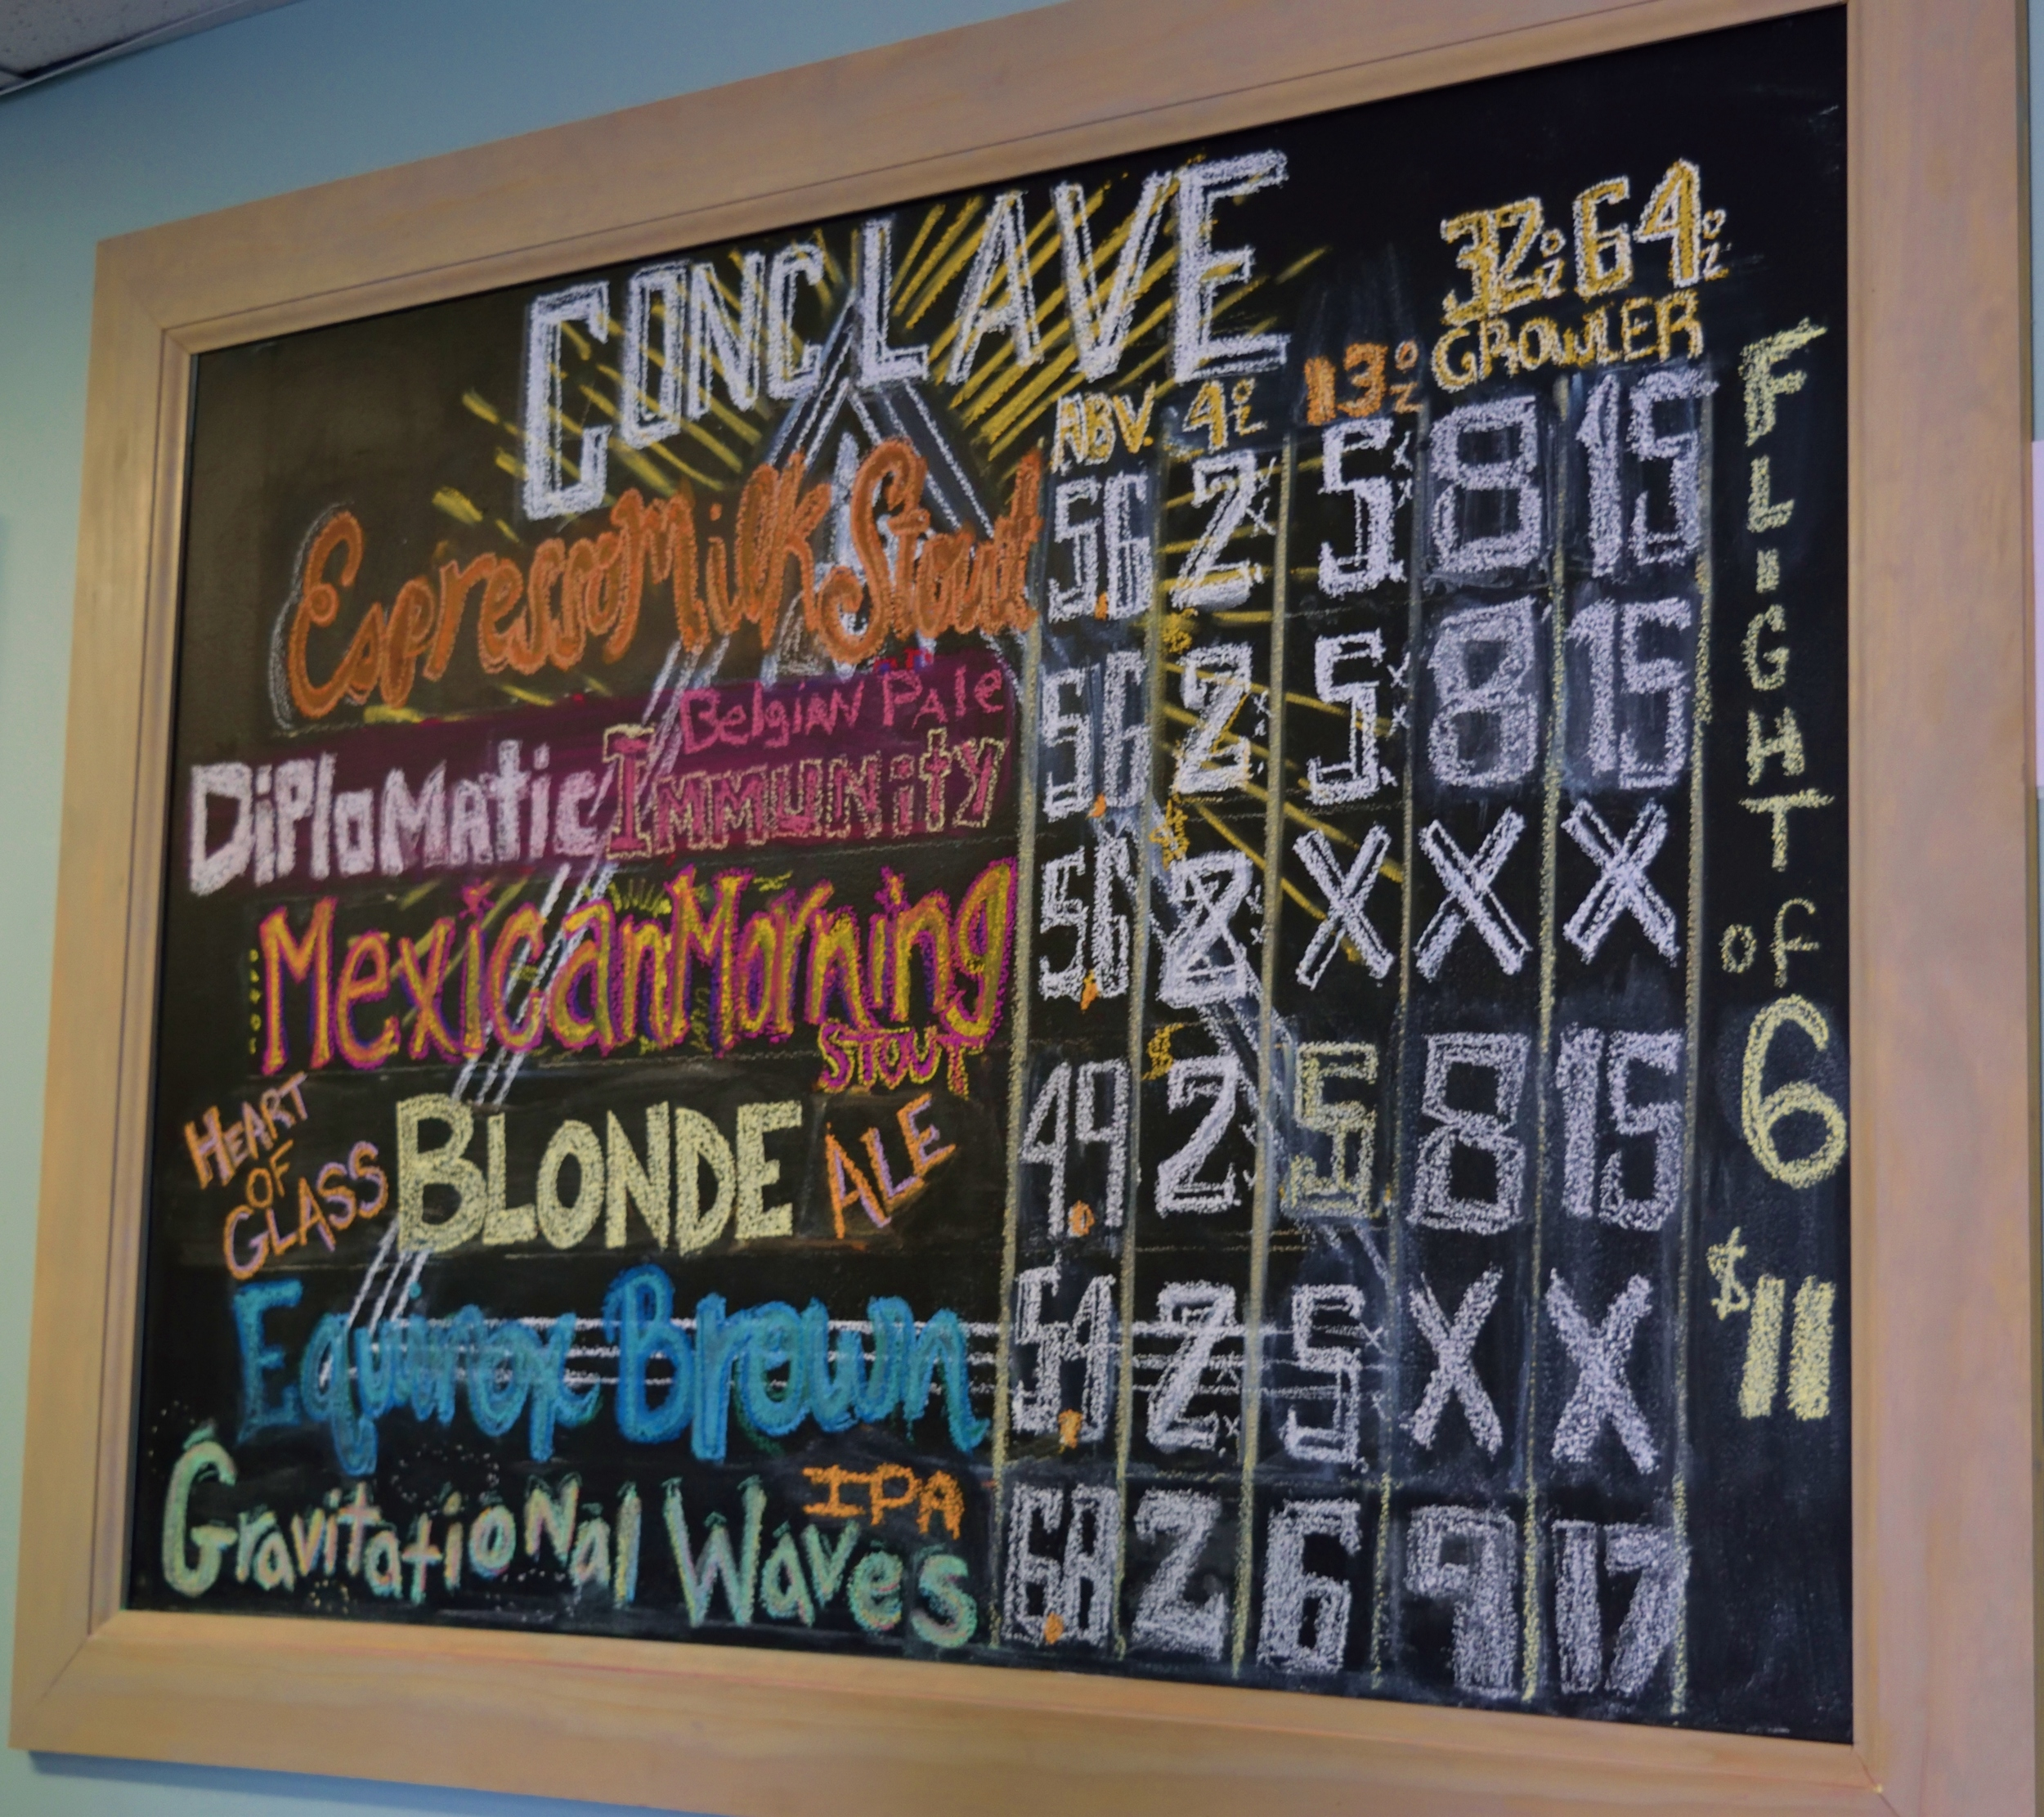 A list of the beers on tap at the time of our visit. All are good!